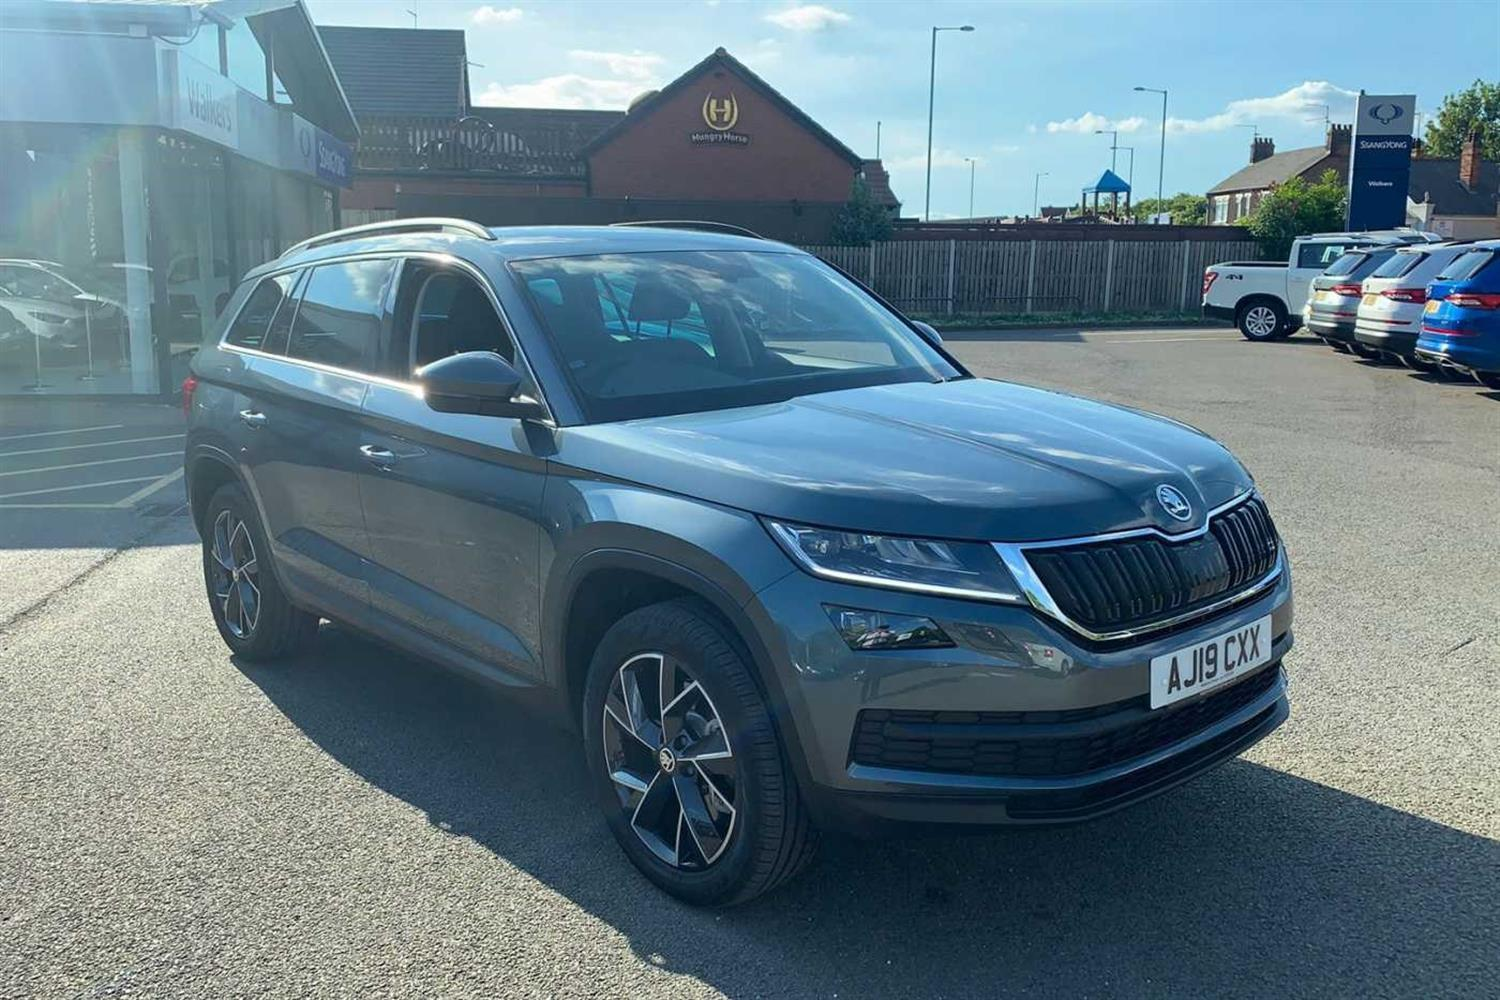 Skoda Kodiaq 2.0 TDI (190ps) 4X4 SE L (7 Seats) DSG Estate Diesel Quartz Grey